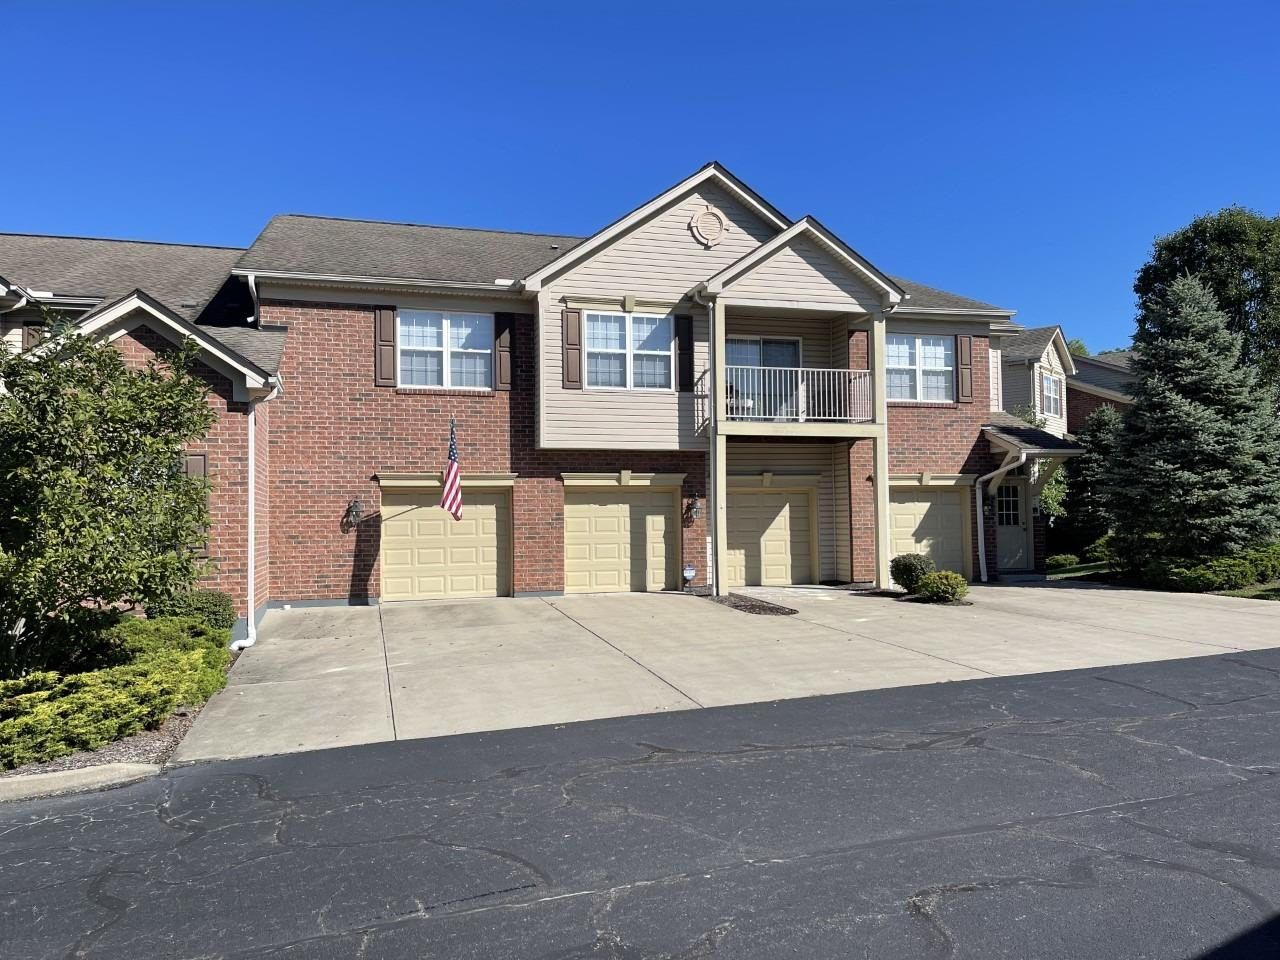 5557 Twin Lakes Court, Green Twp, Ohio 45247, 3 Bedrooms Bedrooms, 6 Rooms Rooms,2 BathroomsBathrooms,Condominium,For Sale,Twin Lakes,1716880